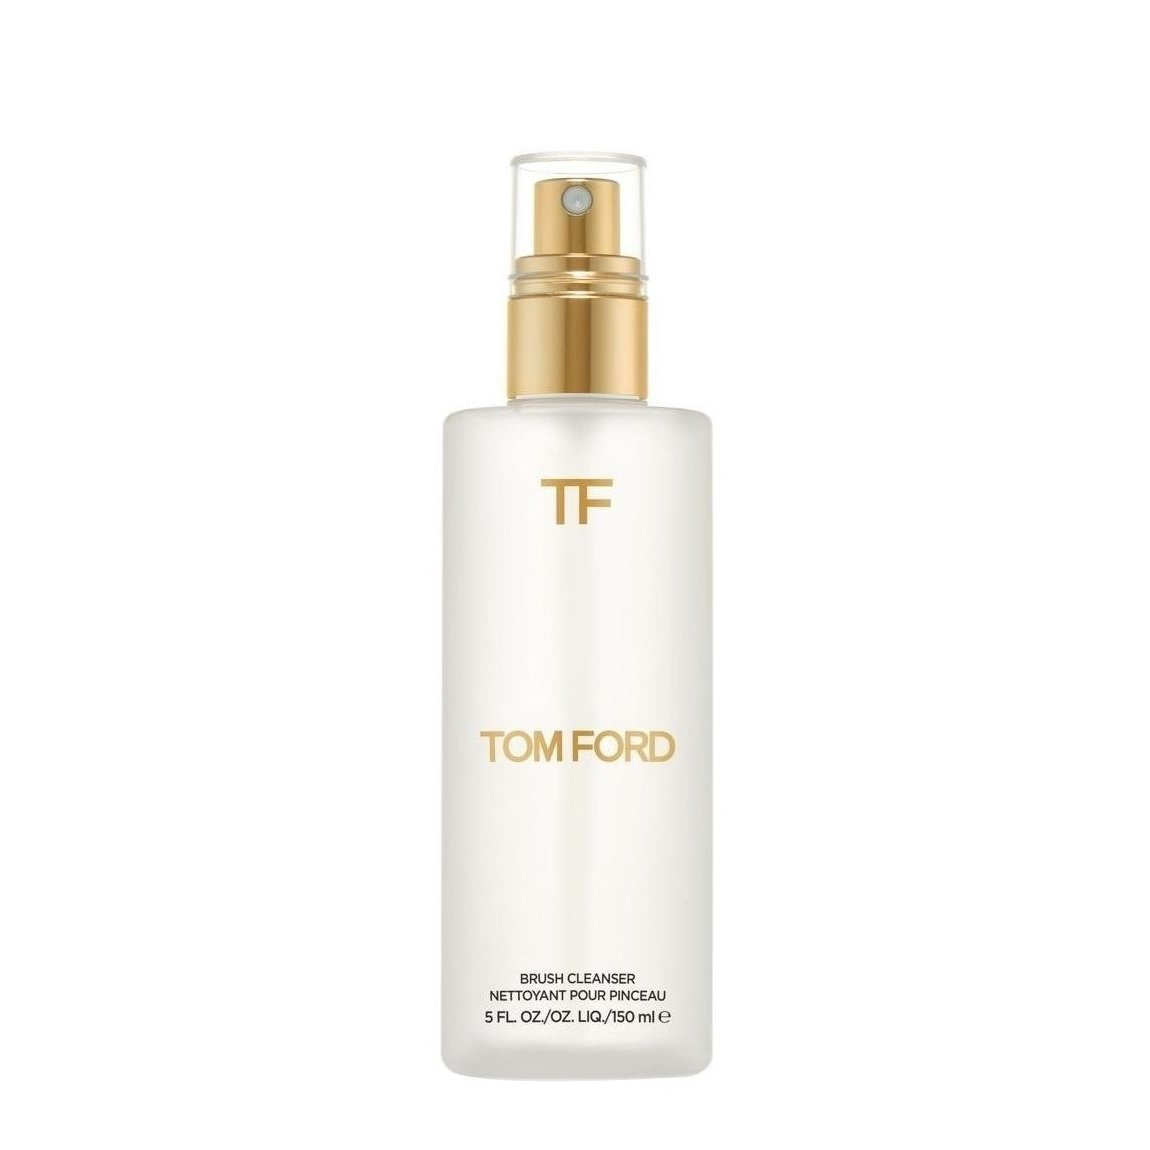 TOM FORD Brush Cleanser product smear.